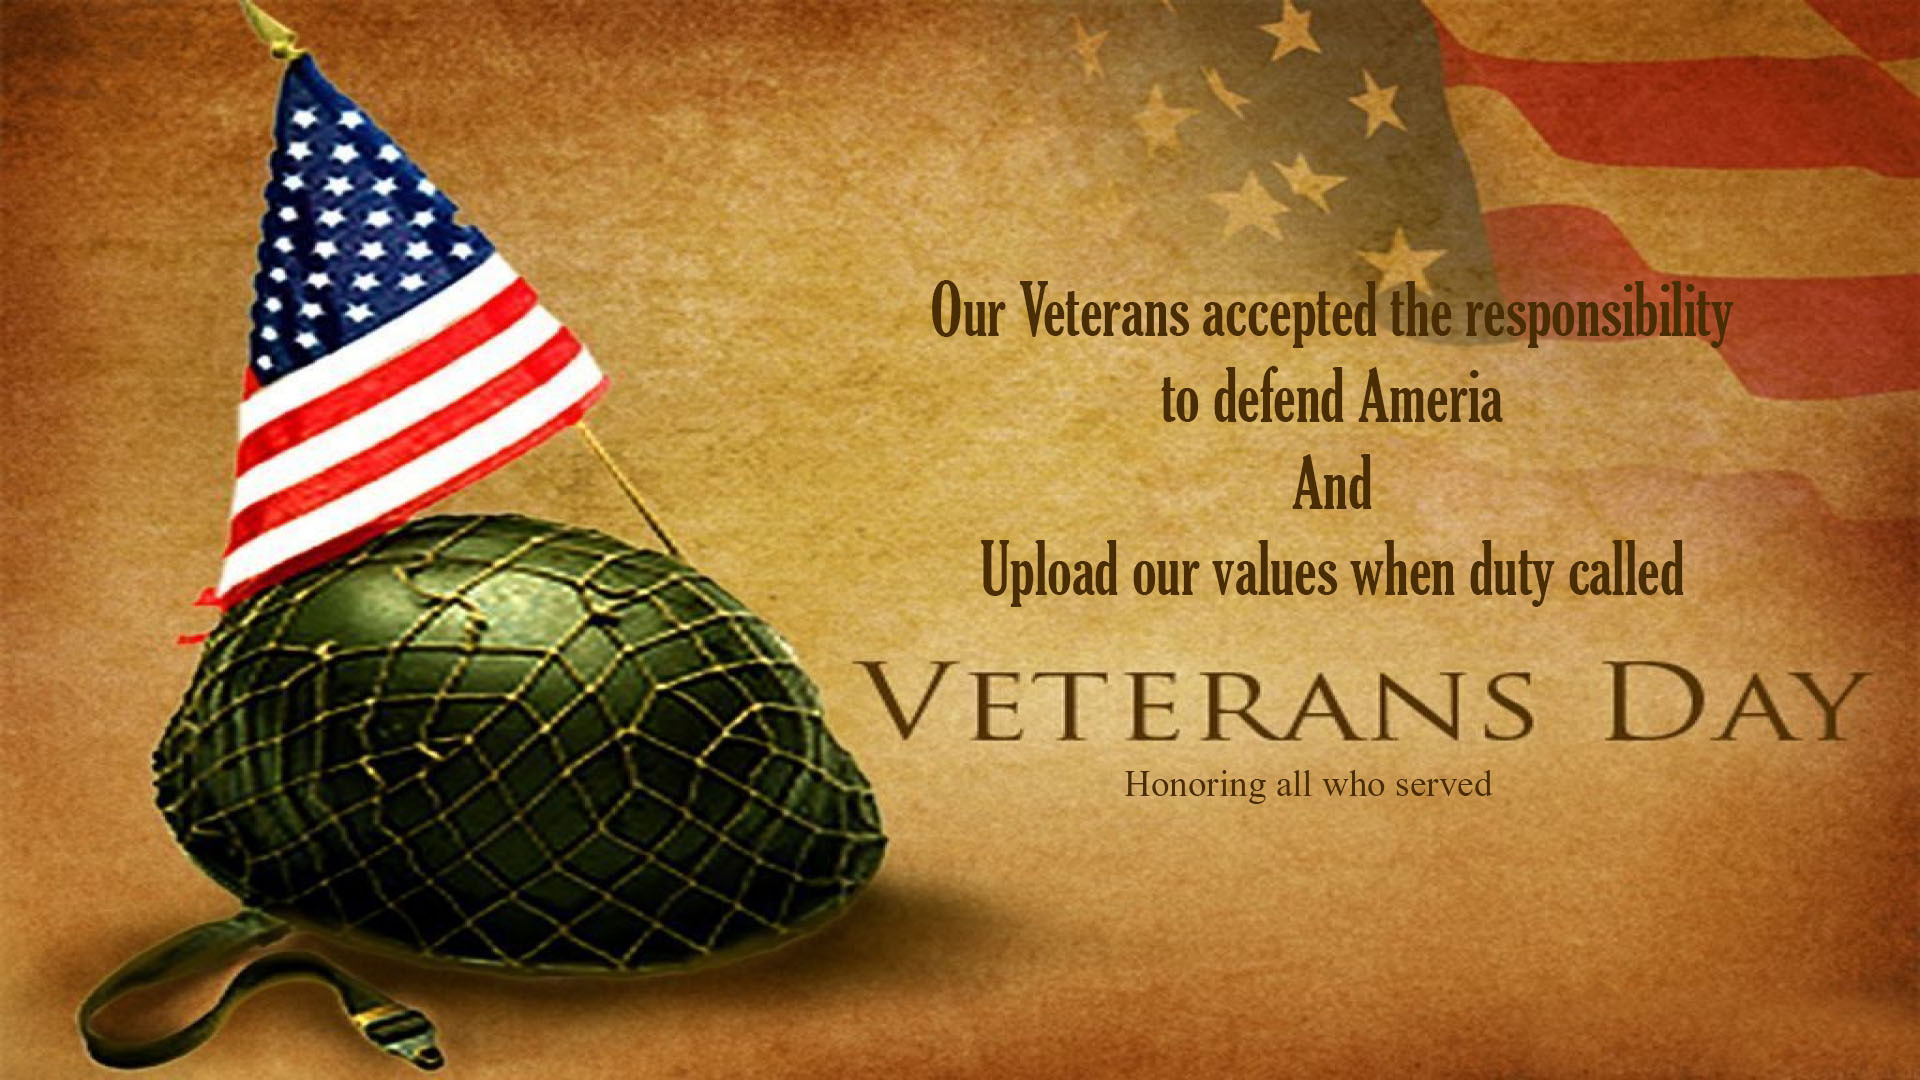 happy-veterans-day-special-hd-wallpapers-images-cards-posters-quotes-wishes-2017